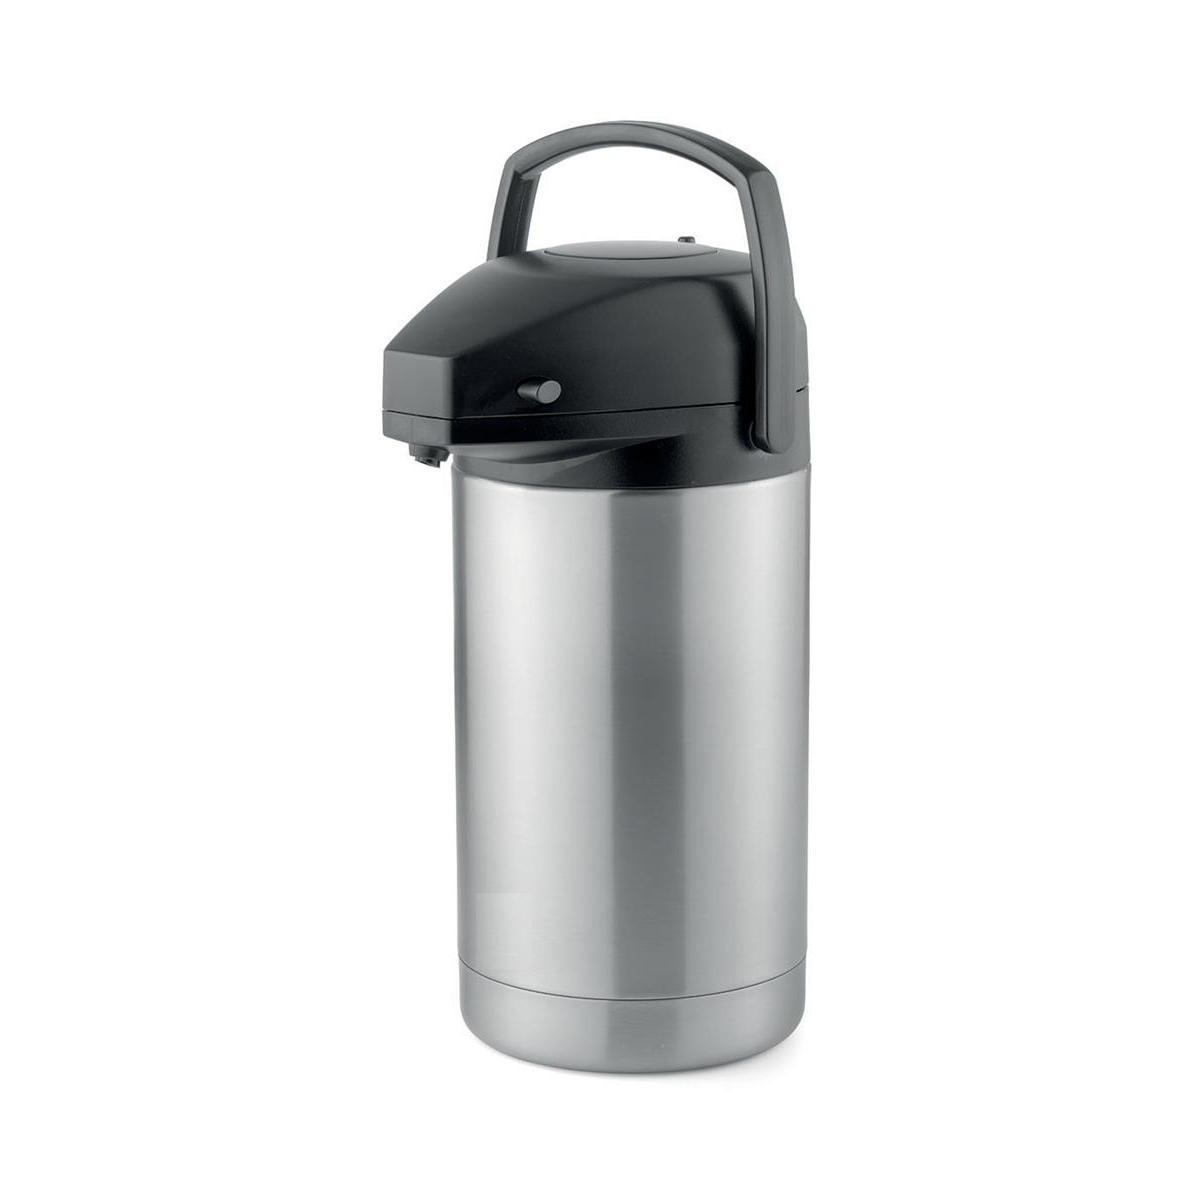 Addis Pump Pot Vacuum Jug Stainless Steel Retains Heat 8 hours 3 Litres